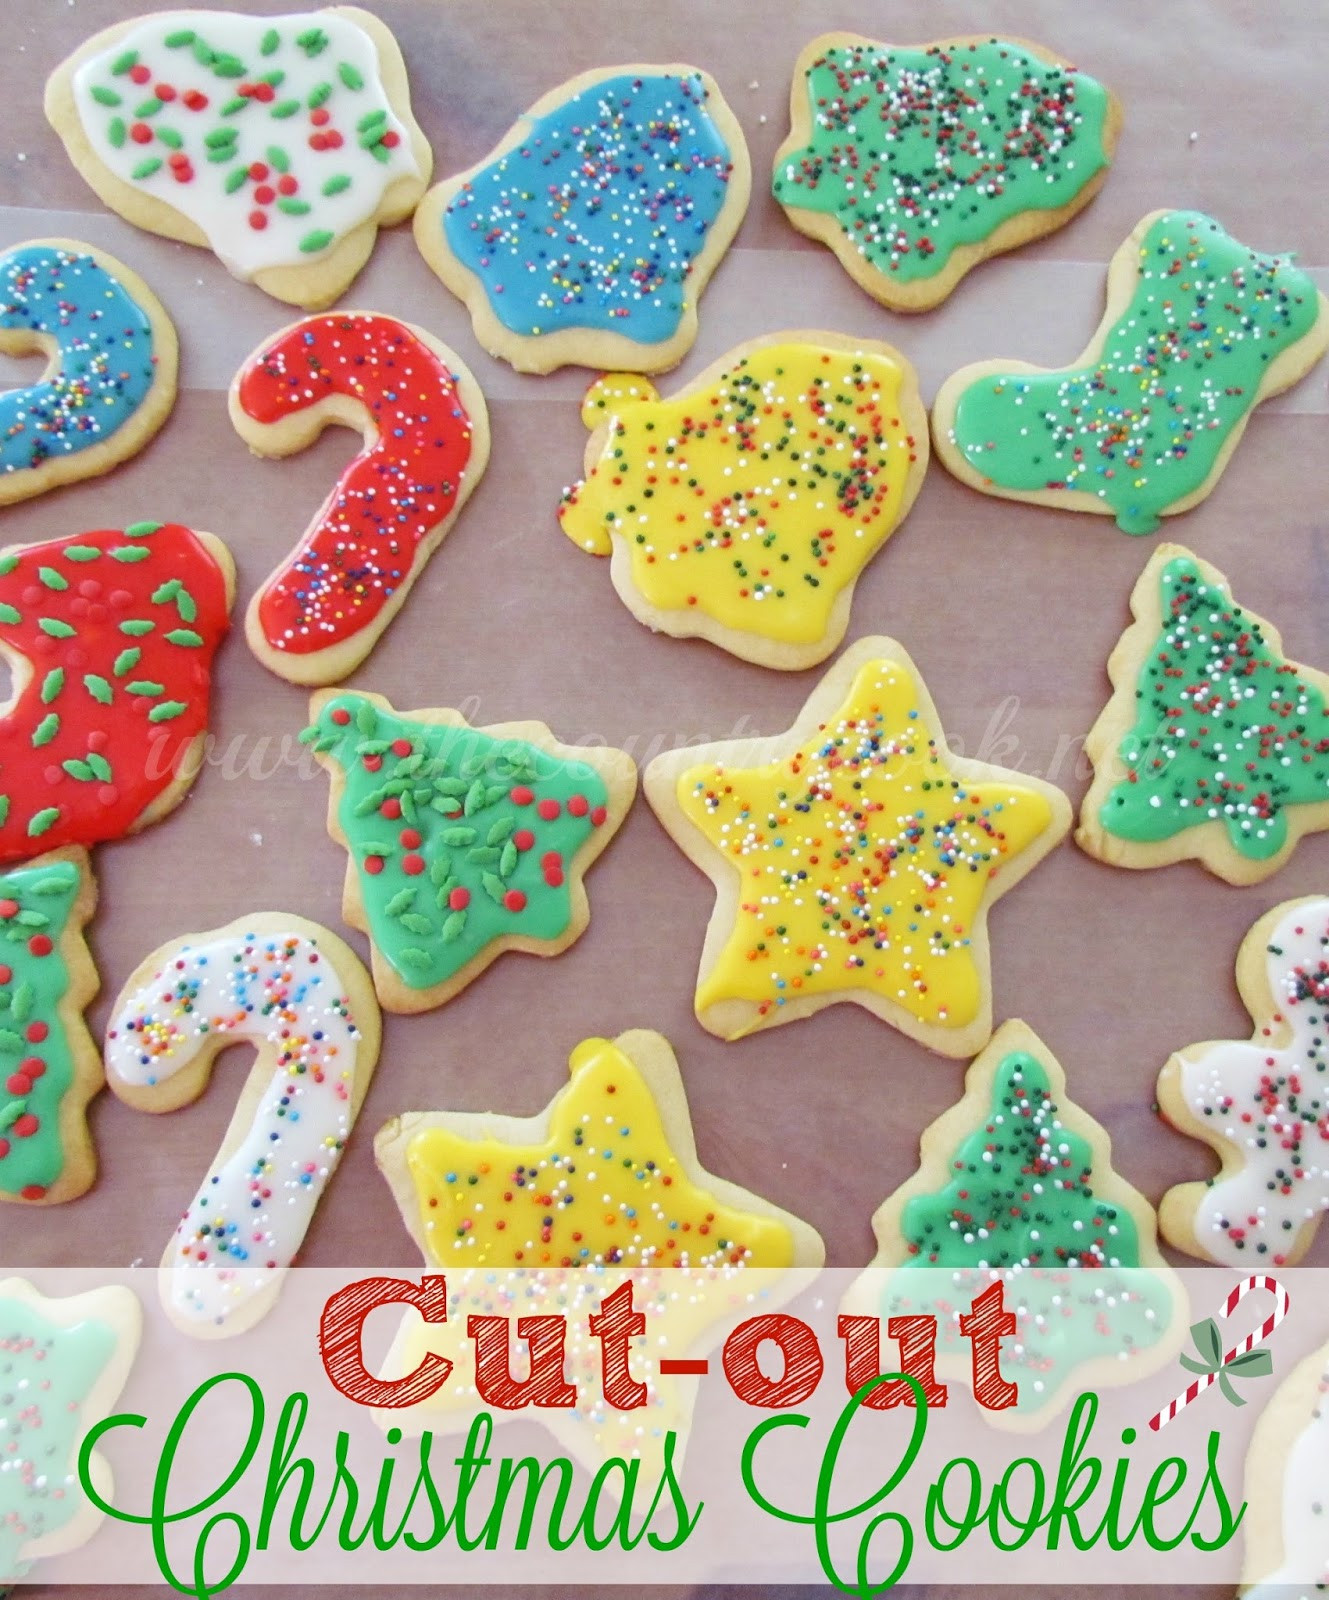 Christmas Sugar Cookies With Icing  Cut Out Sugar Cookies The Country Cook